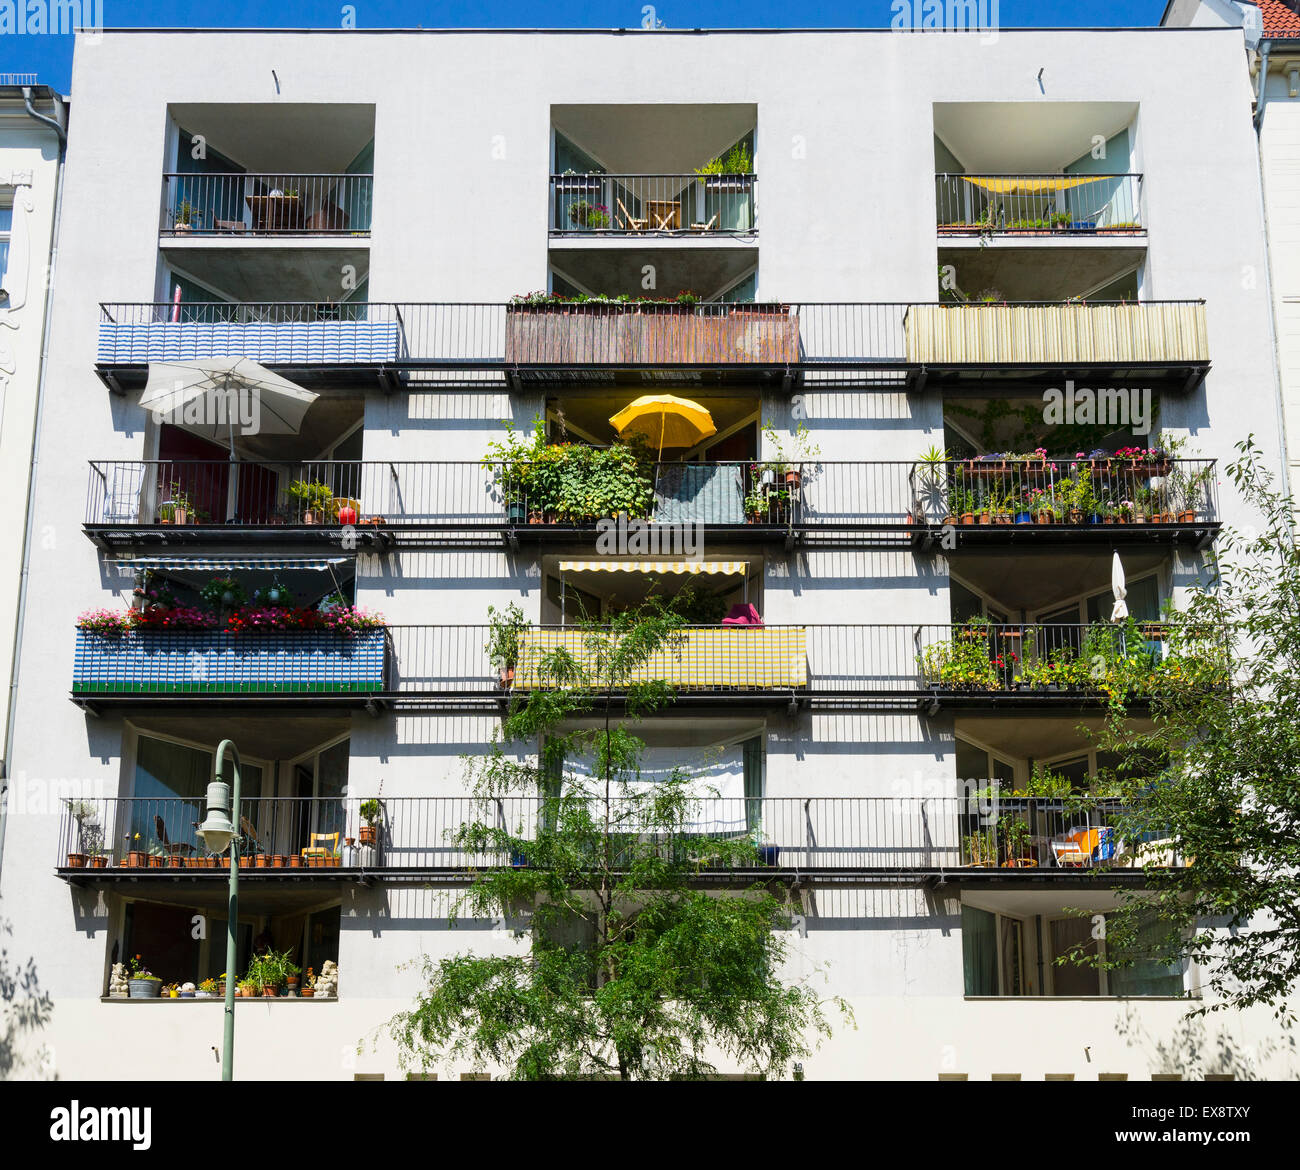 Types Of Apartment Buildings: Balconies In Summer In Modern Apartment Building In